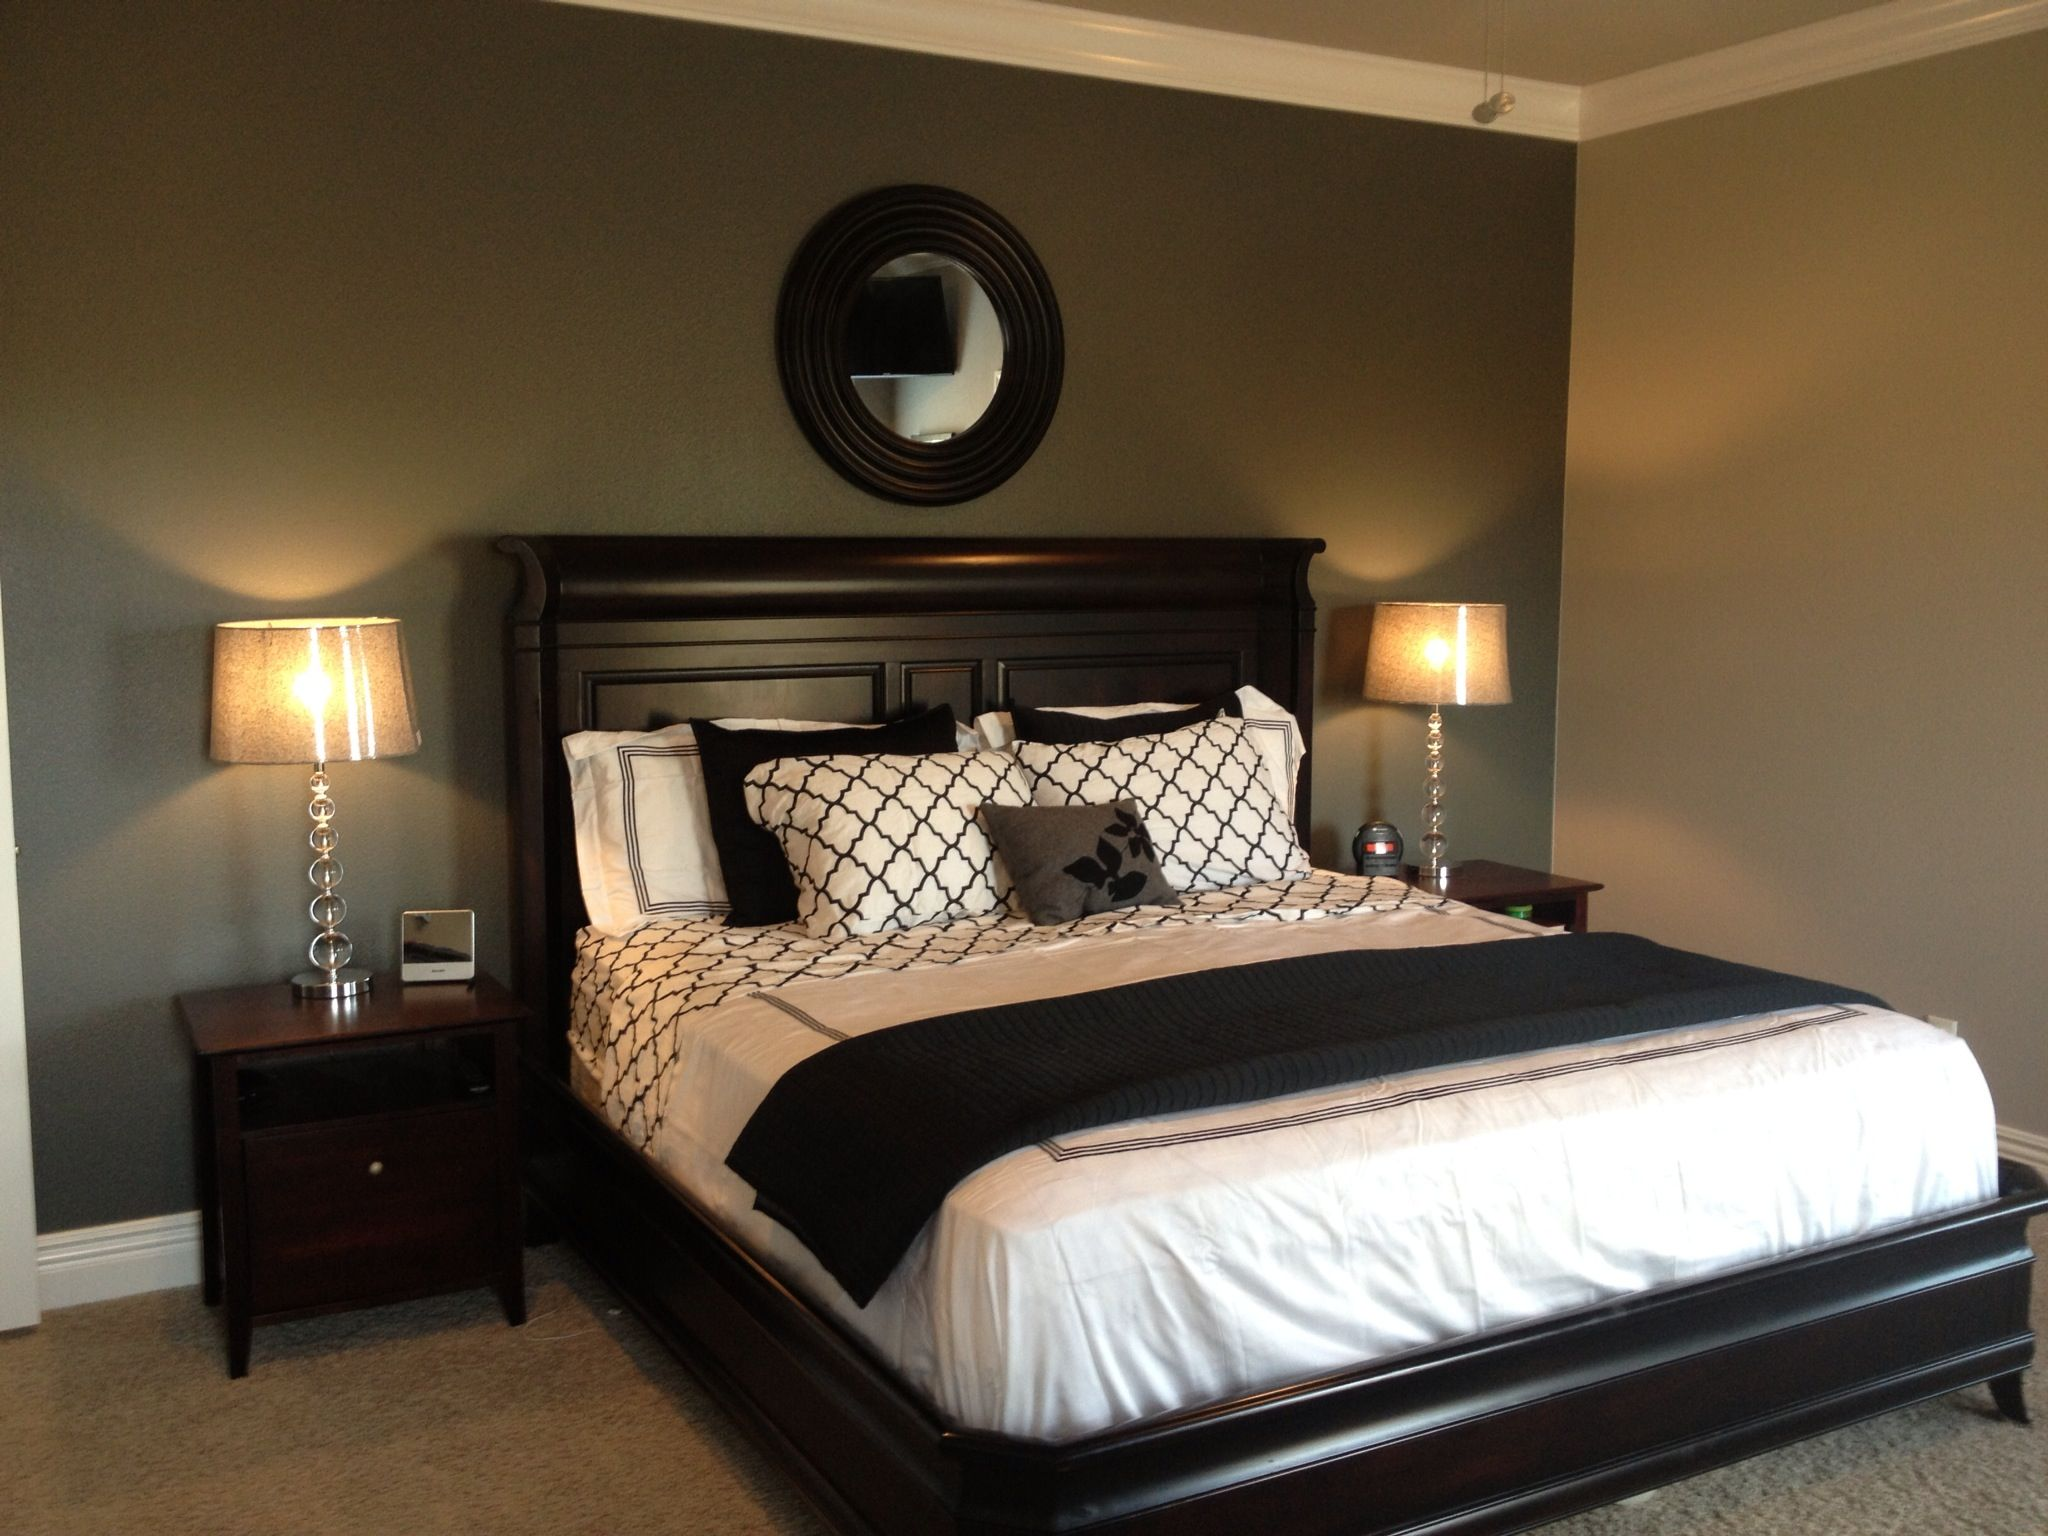 Grey Accent Wall With Black And White Bedding Lamps Shades Mirrors Target Bedding Overstock